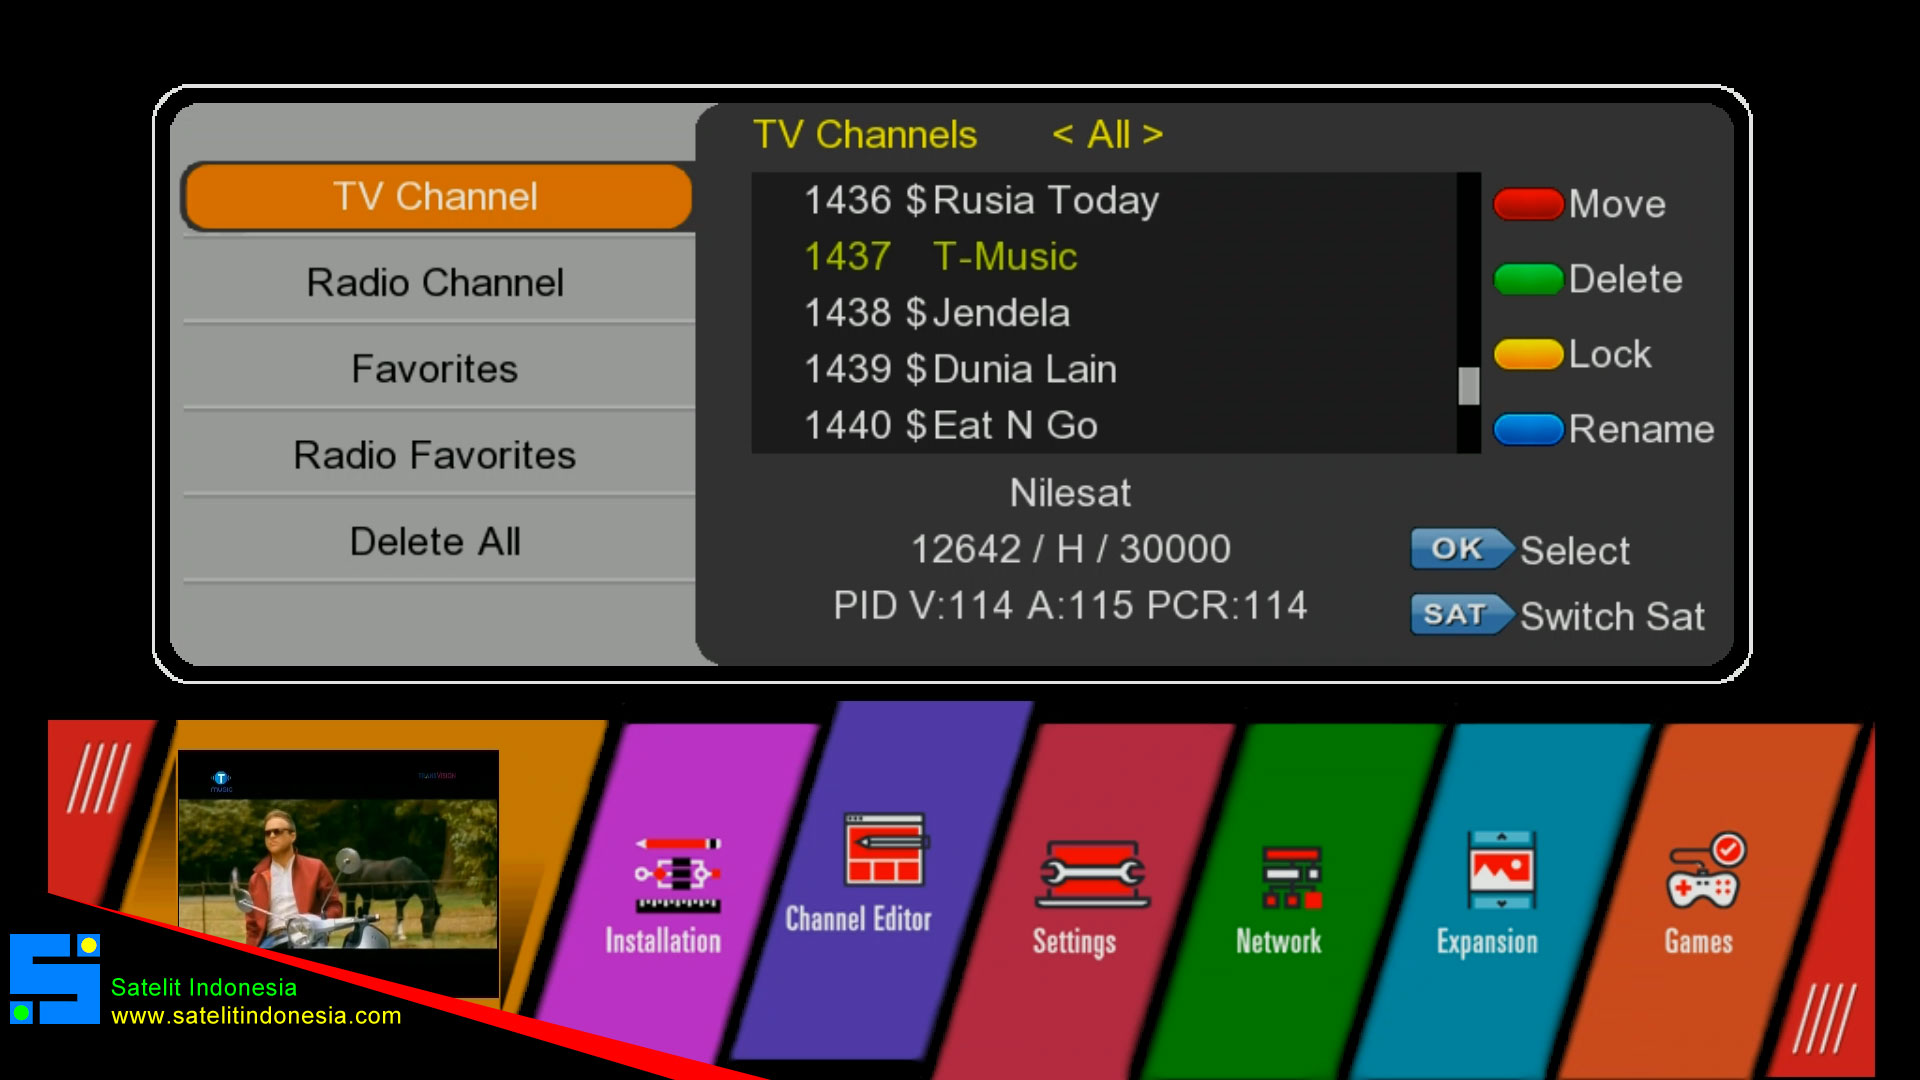 Download SW Starsat GX6605S GuoXin U38 HW203.00.001 New Software